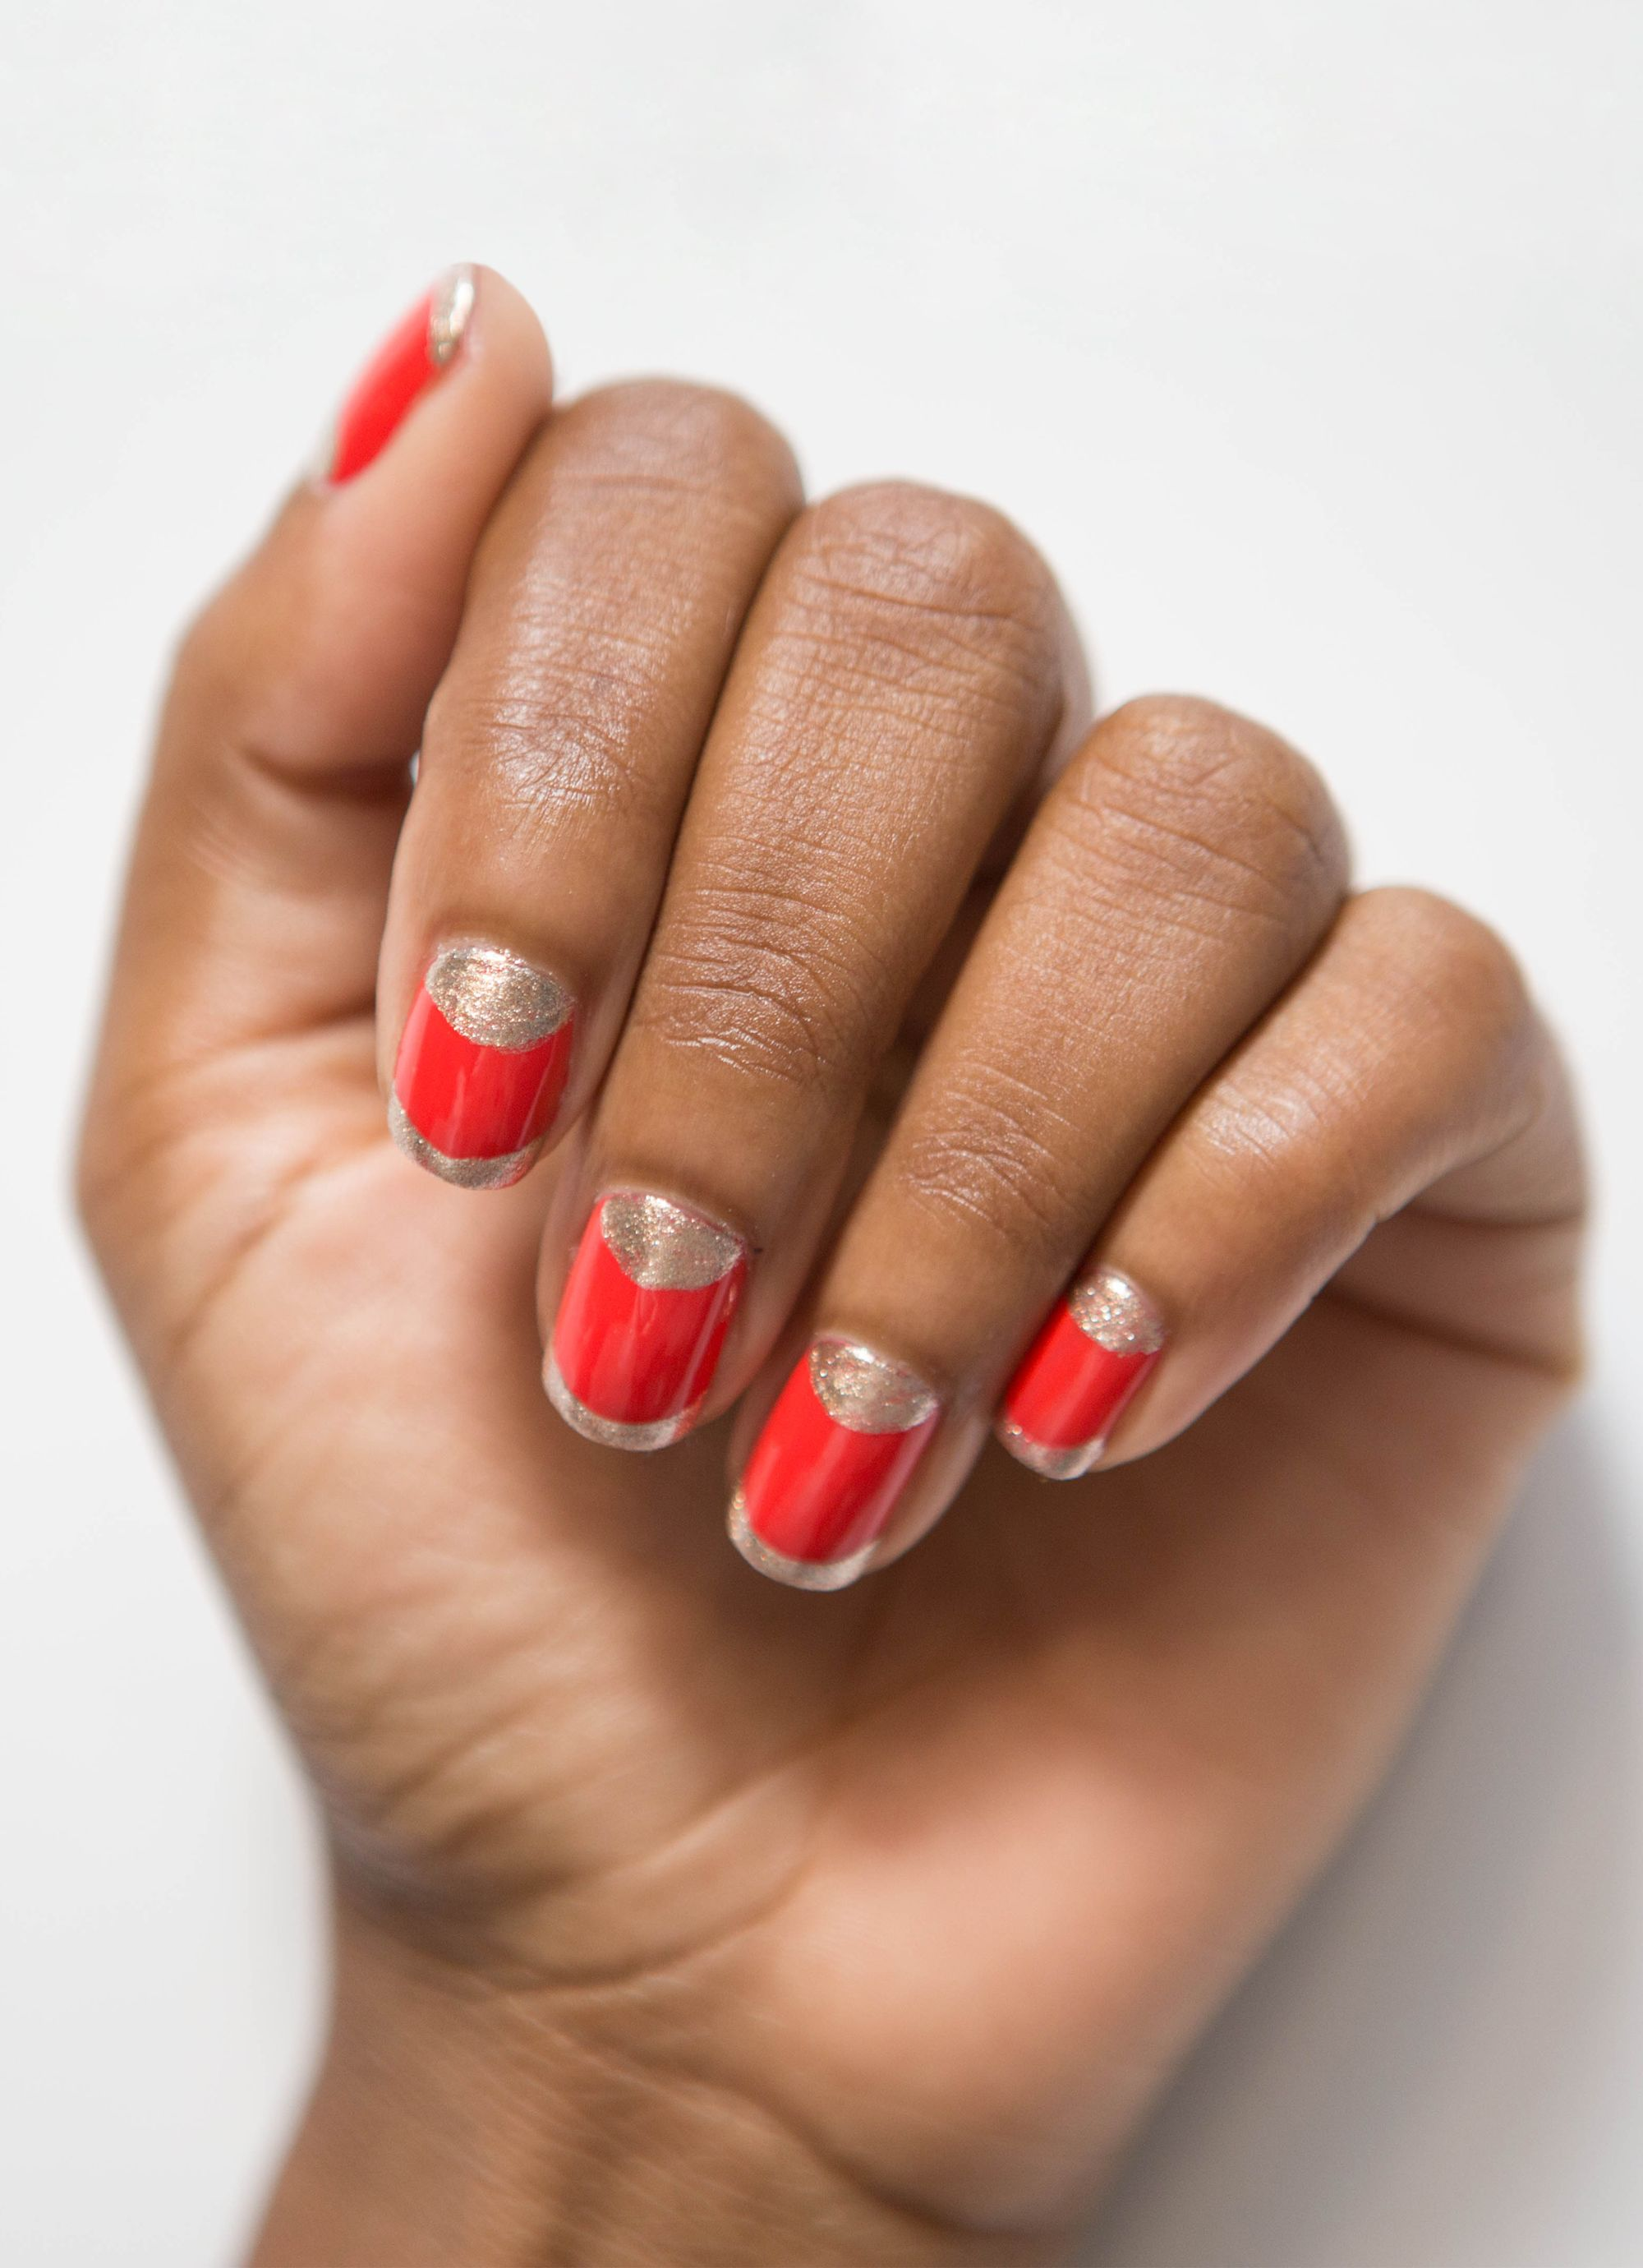 Nail Art How-To: Half-Moon With a French Tip Twist